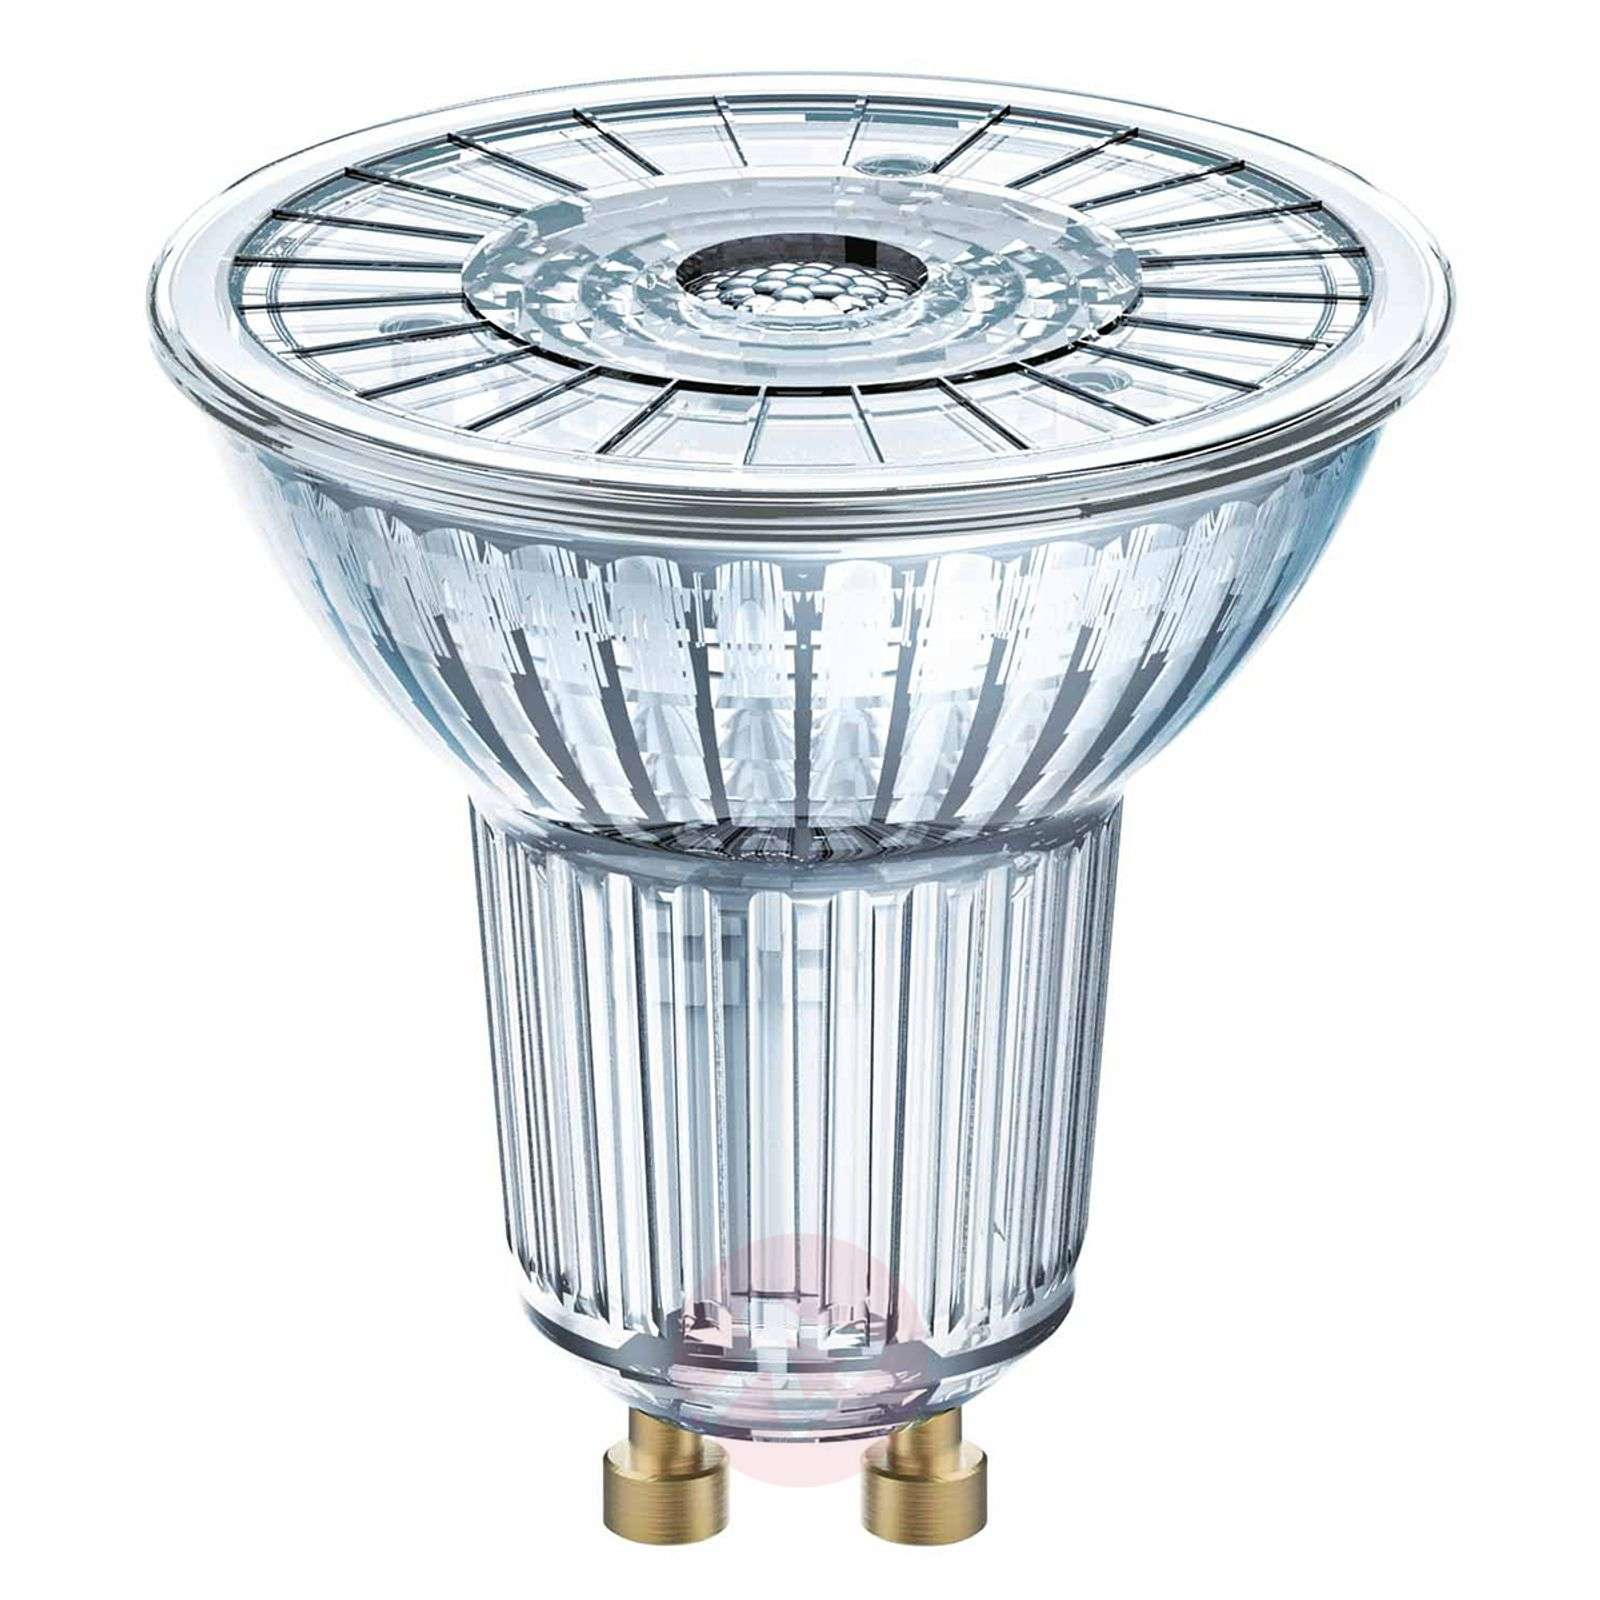 Réflecteur verre LED GU10 4,5W Superstar 36degree-7260832X-01